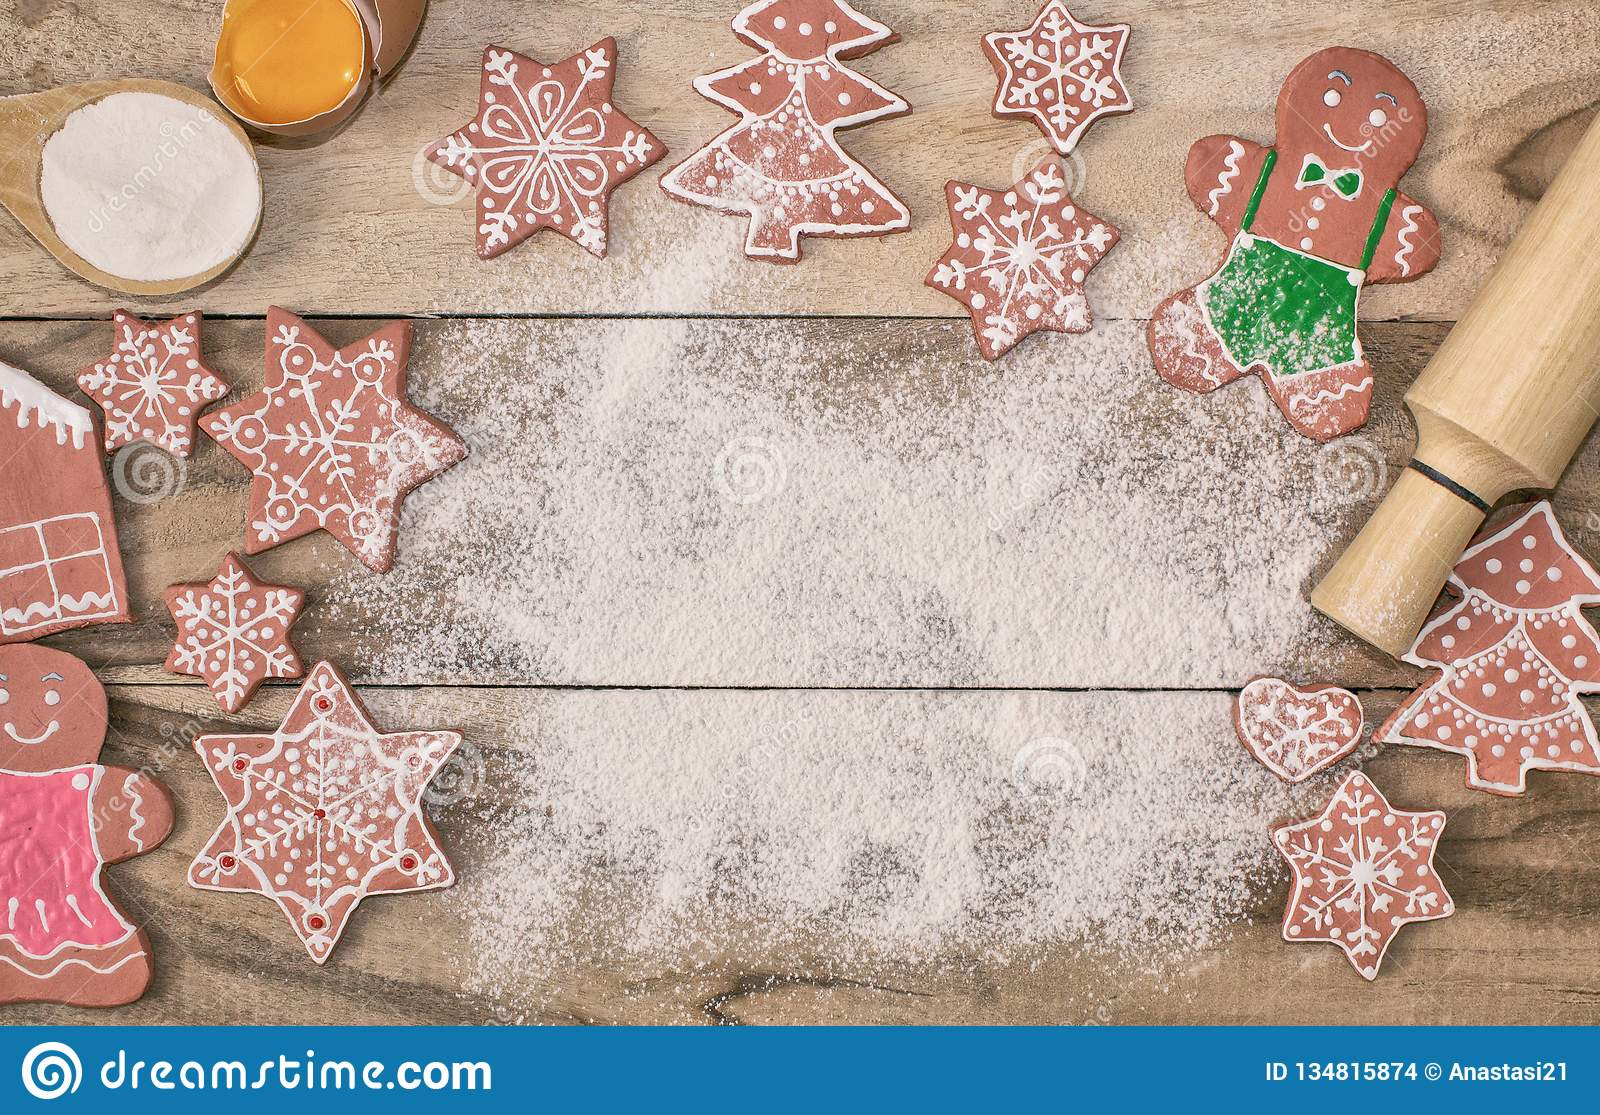 Christmas cooking. Flour for baking, eggs, ginger biscuits and Gingerbread man on wooden background. With free space for text.